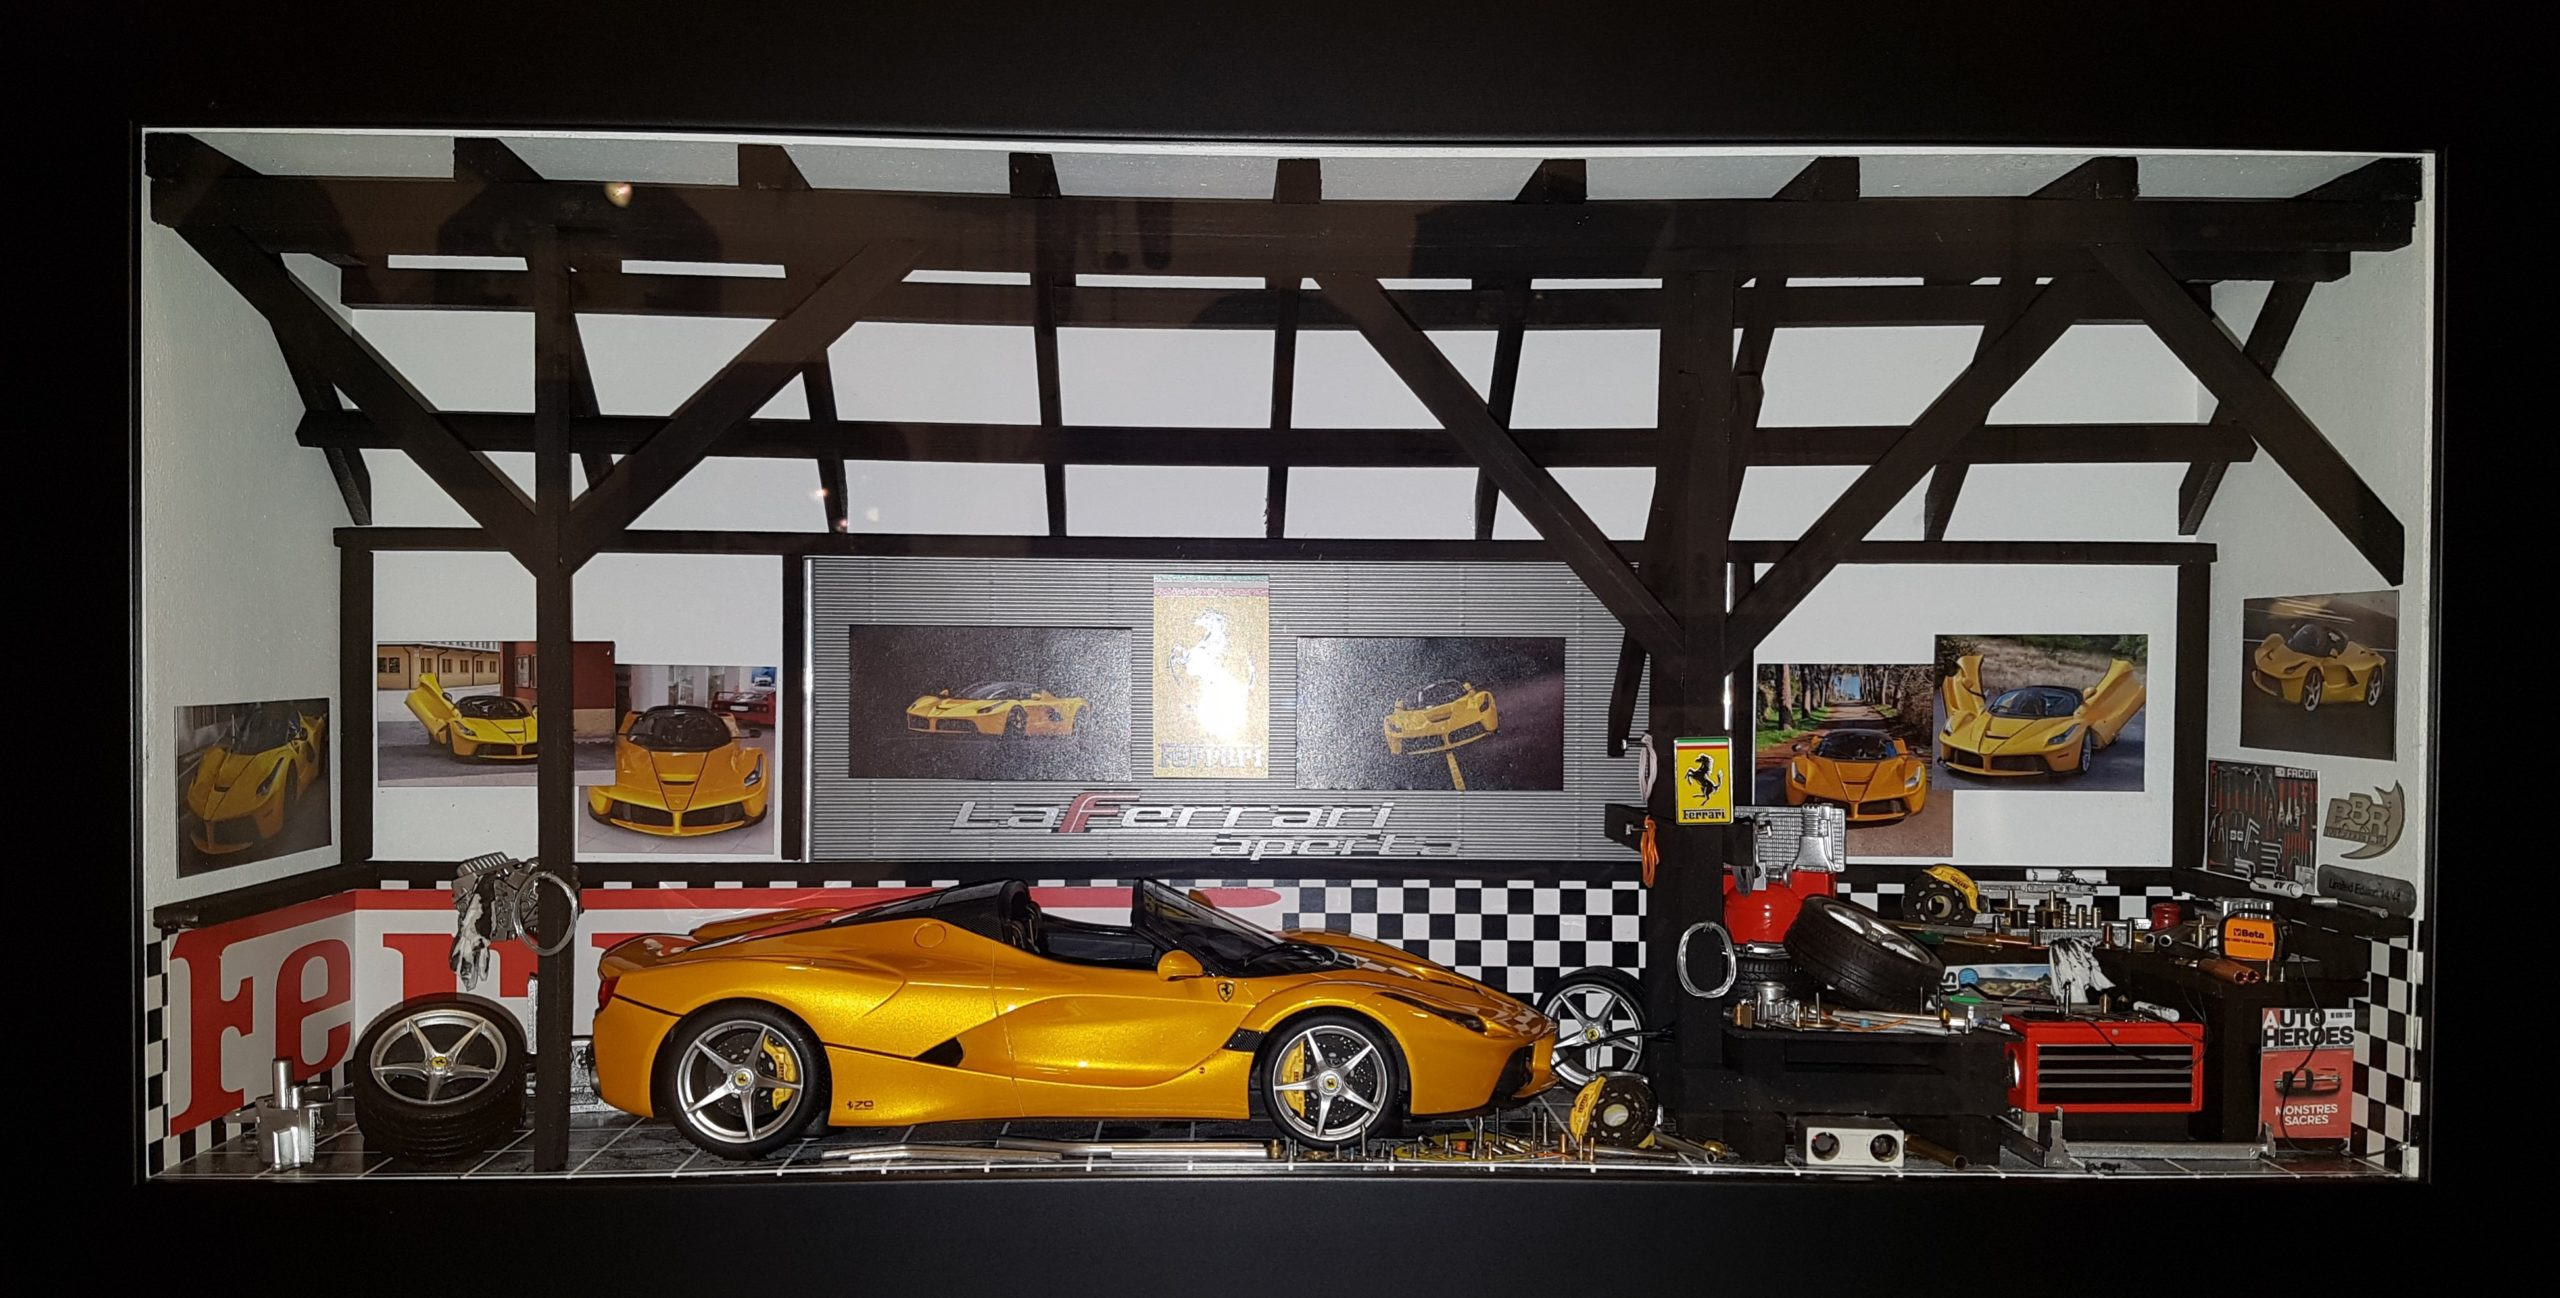 Car Display Box – Ferrari Laferrari Aperta